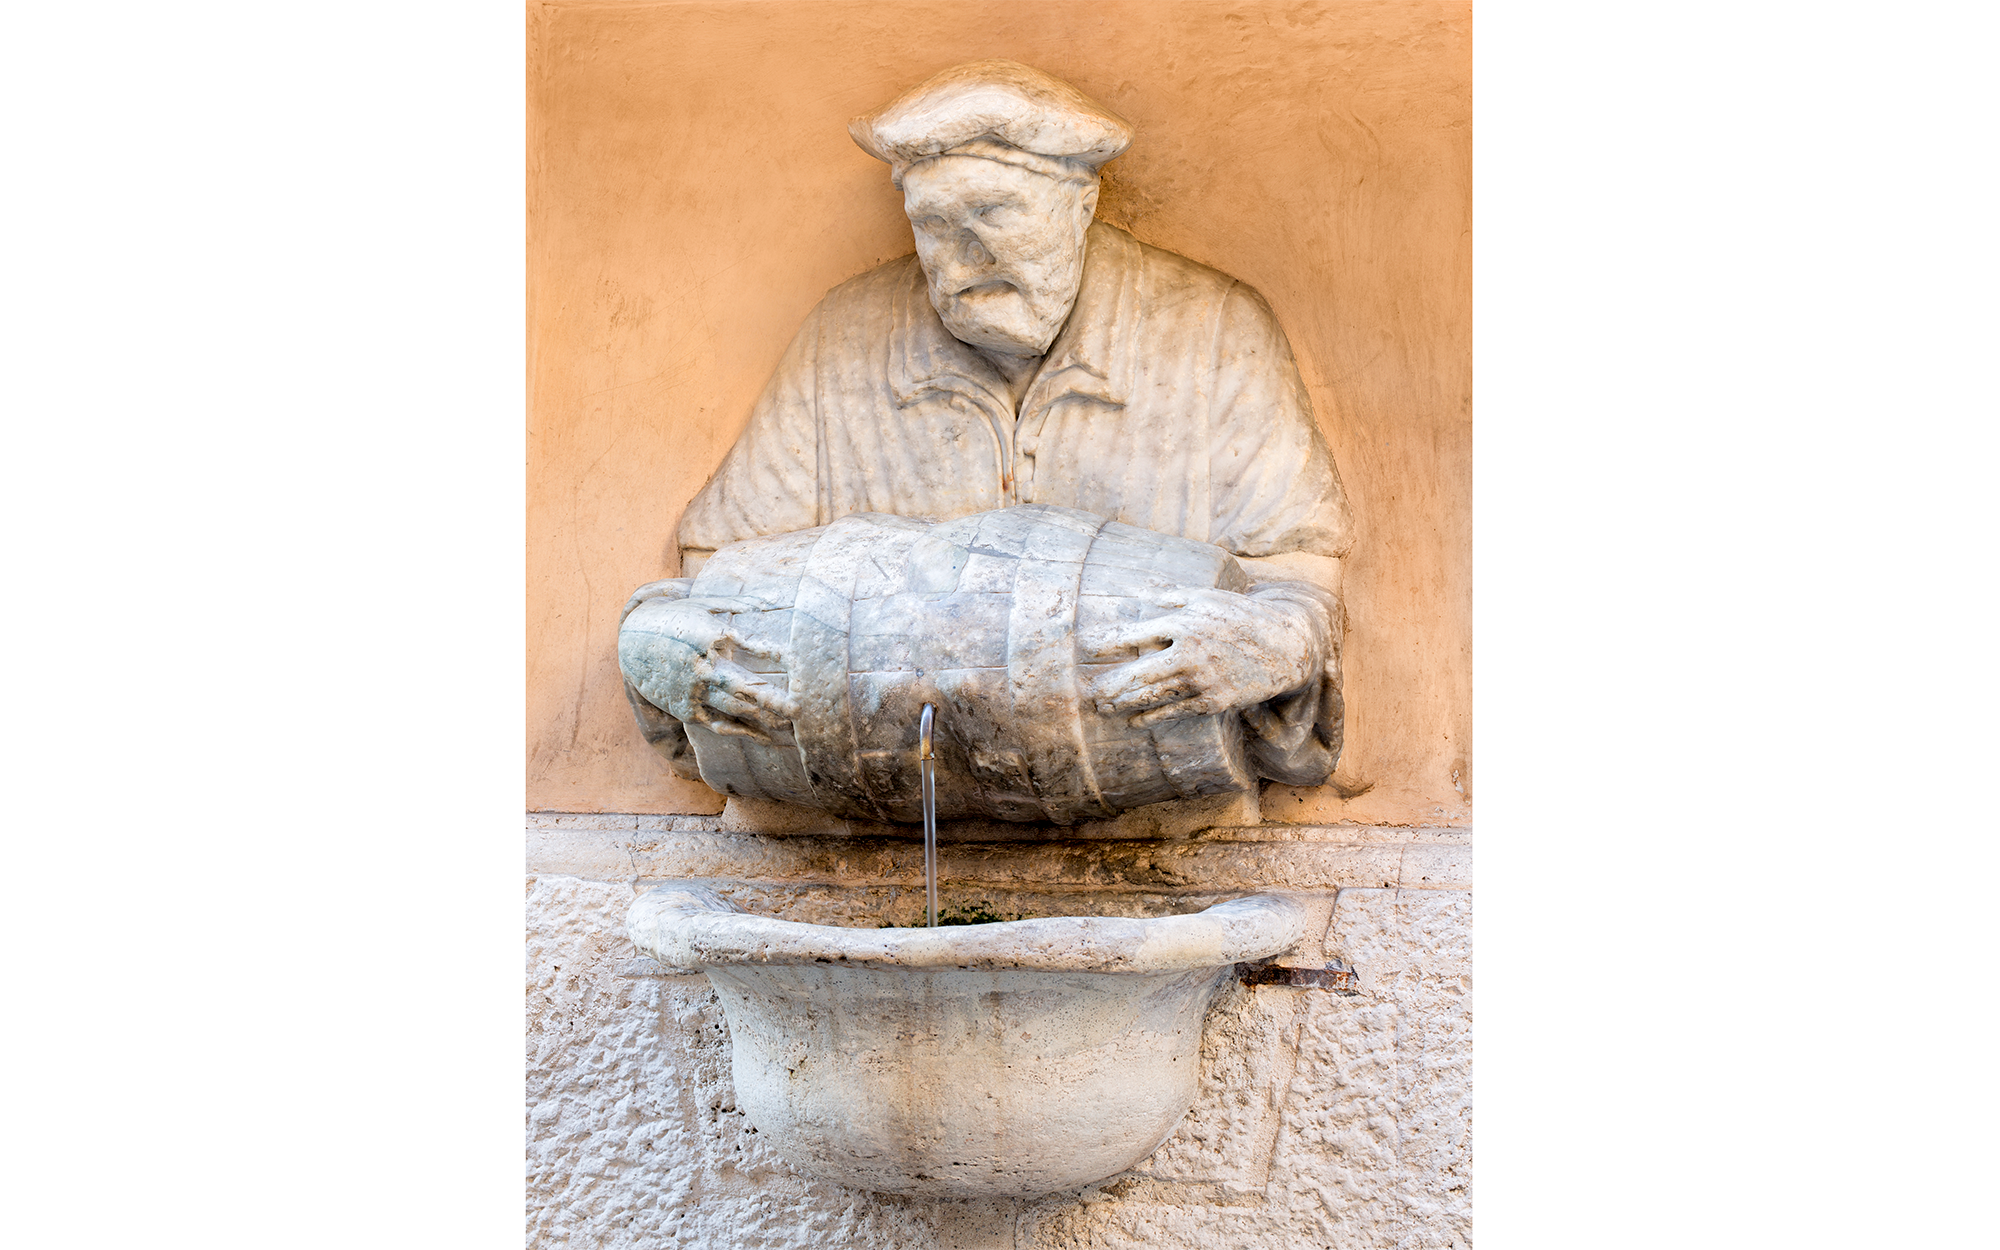 12 Roman Fountains That Will Make You Want to Book a Flight: Fontana Del Facchino